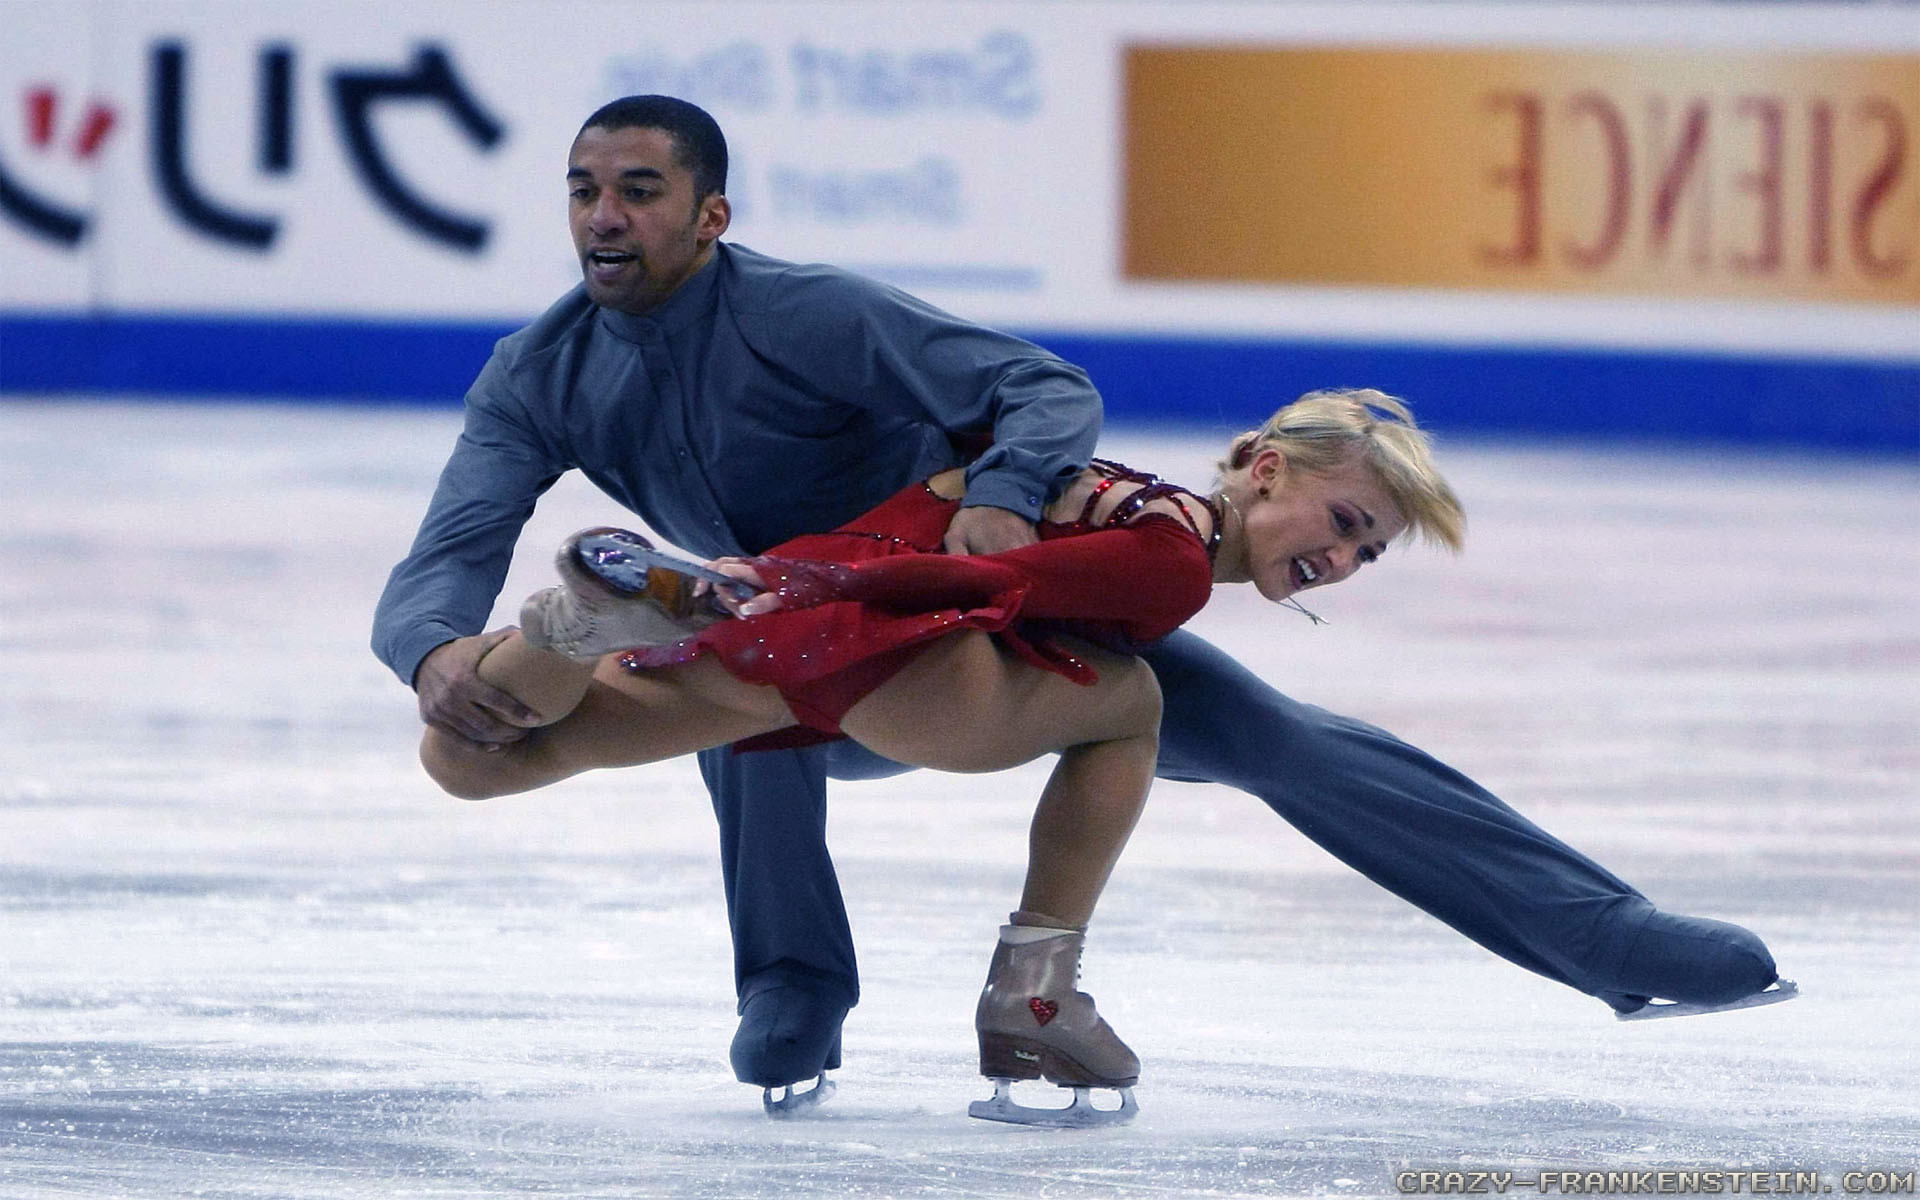 Res: 1920x1200, Figure Skater, Skating, Ice Dancing Mixed, Recreation, Ice Rink HD Wallpaper,  Sport Picture, Background and Image